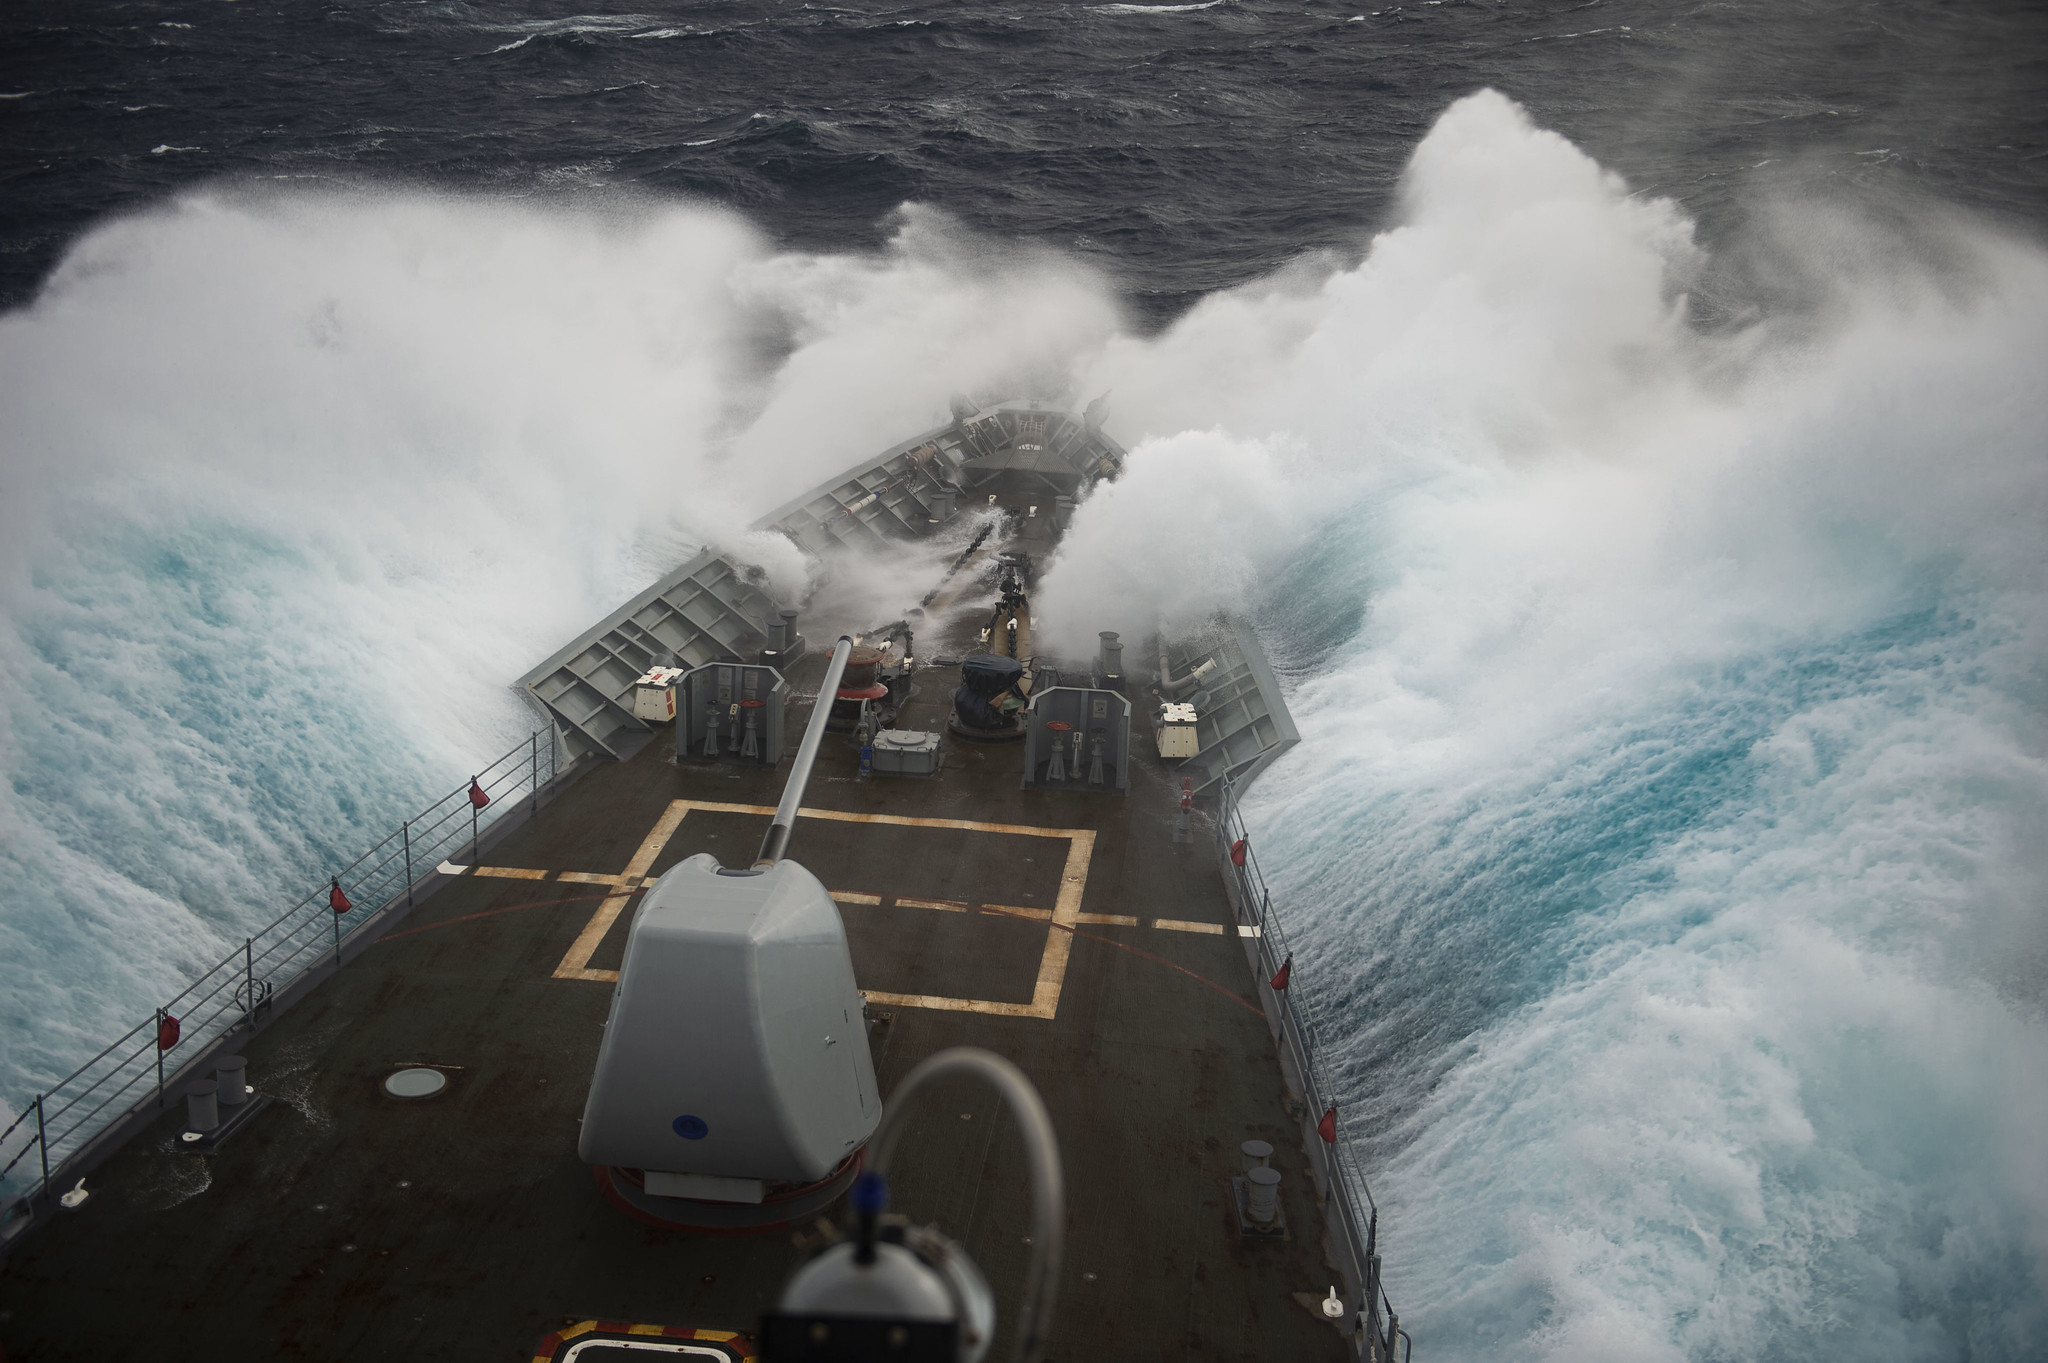 The Ticonderoga-class guided-missile cruiser USS Vella Gulf (CG 72) conducts operations in the Atlantic Ocean on Feb. 6, 2020, as part of the Dwight D. Eisenhower Carrier Strike Group. (Mass Communication Specialist 3rd Class Andrew Waters/Navy)